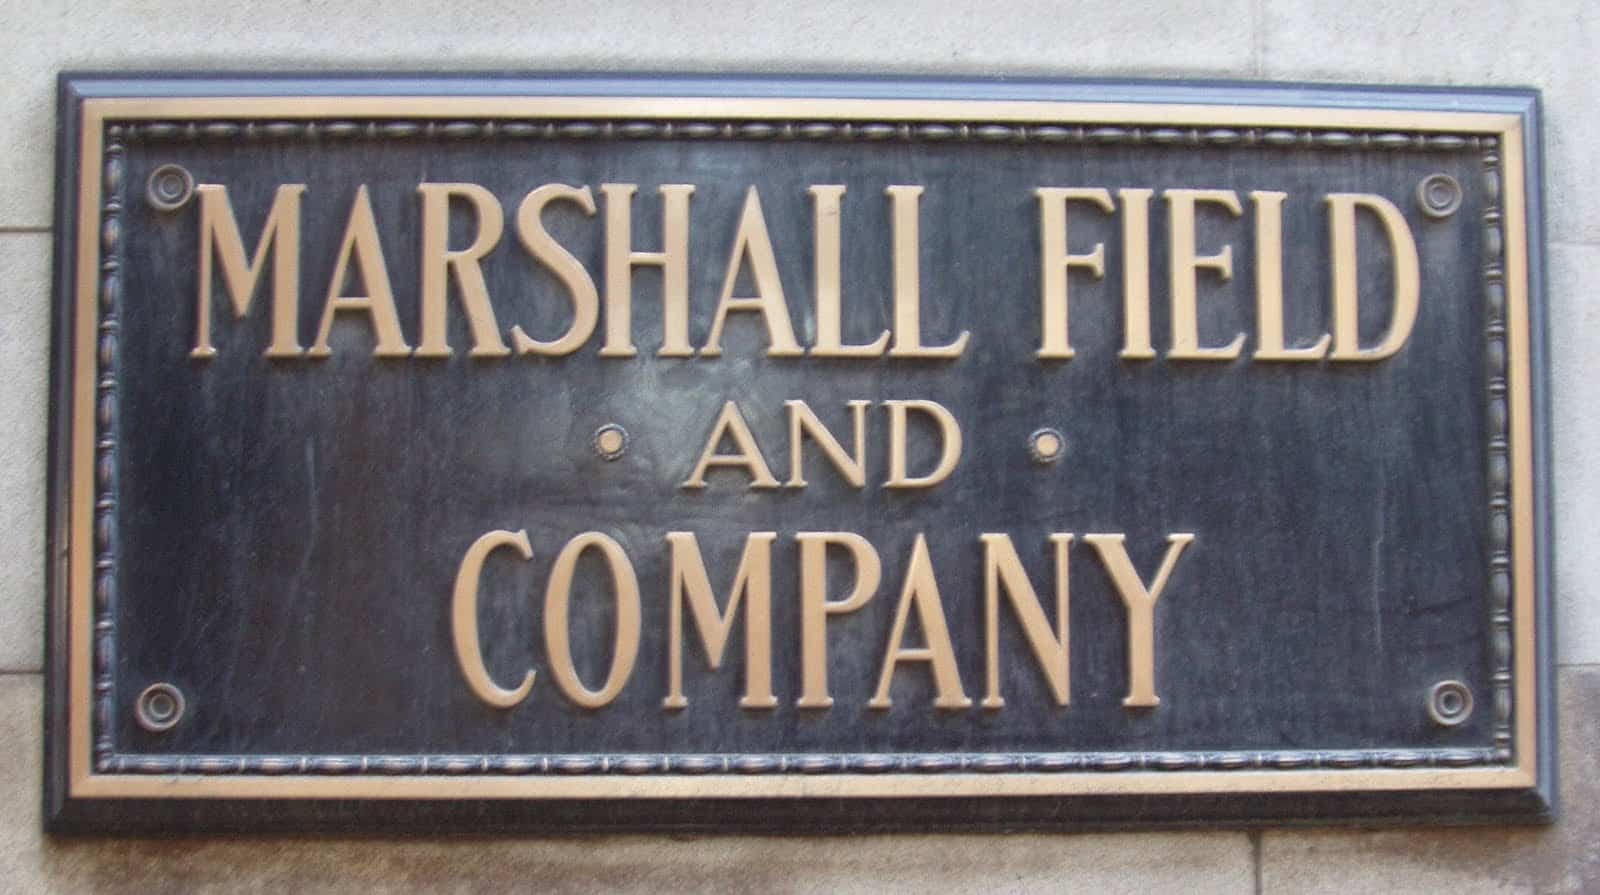 Marshall field brass plate.jpg